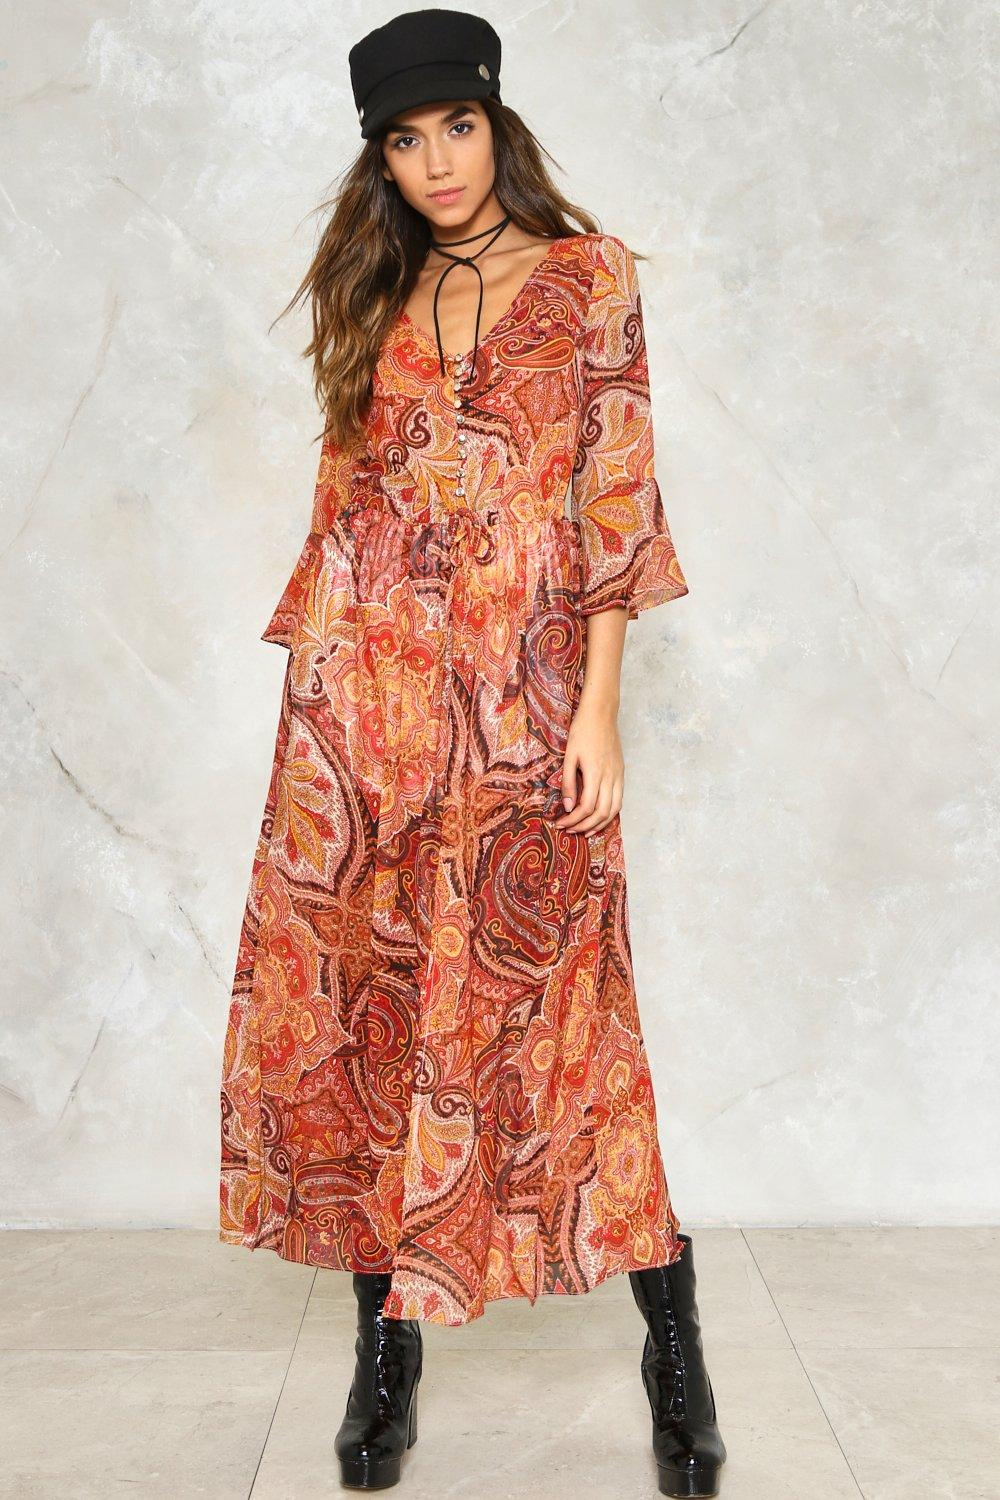 d714dd7b9ba0 The Price You Paisley Maxi Dress | Shop Clothes at Nasty Gal!